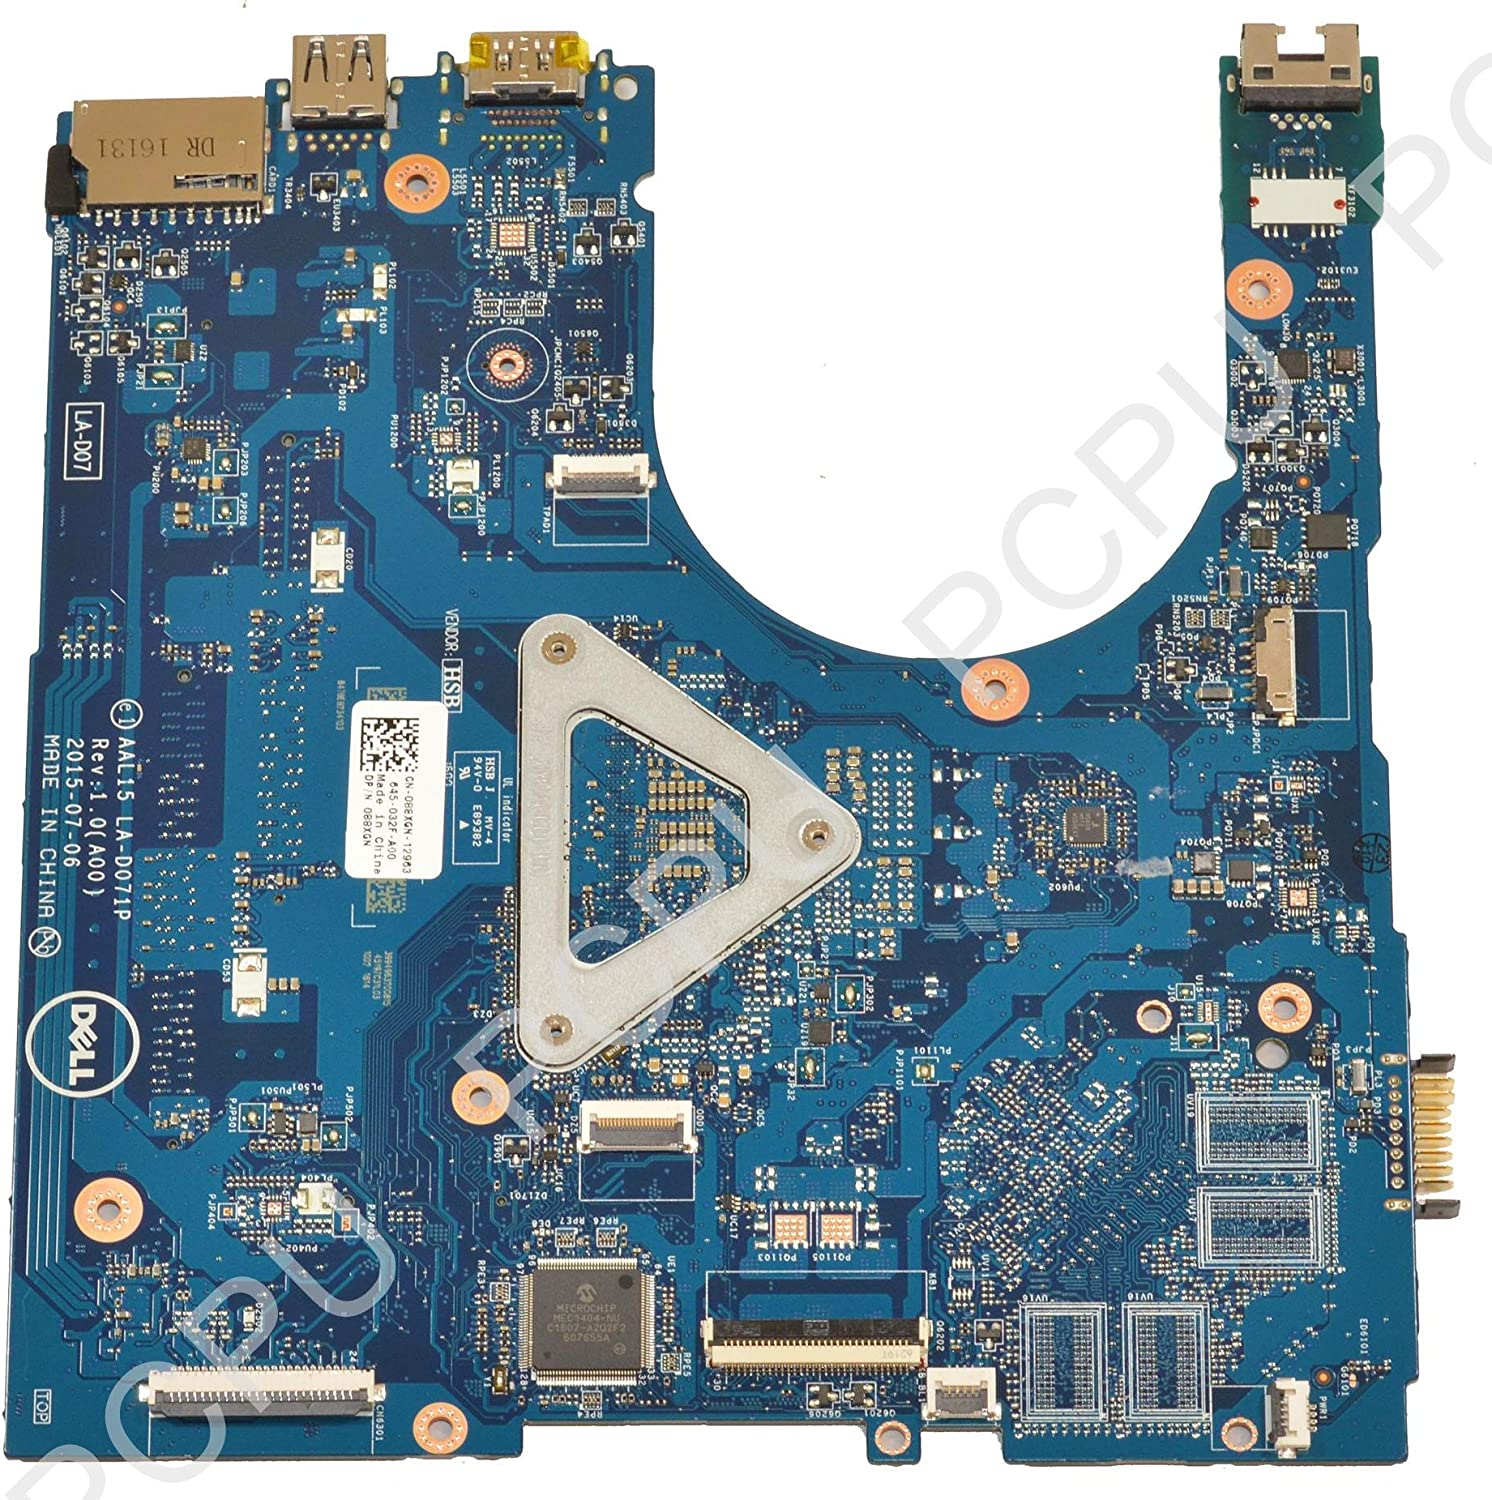 Dell Inspiron 15 5559 Laptop Motherboard w//Intel i3-6100U 2.3Ghz CPU